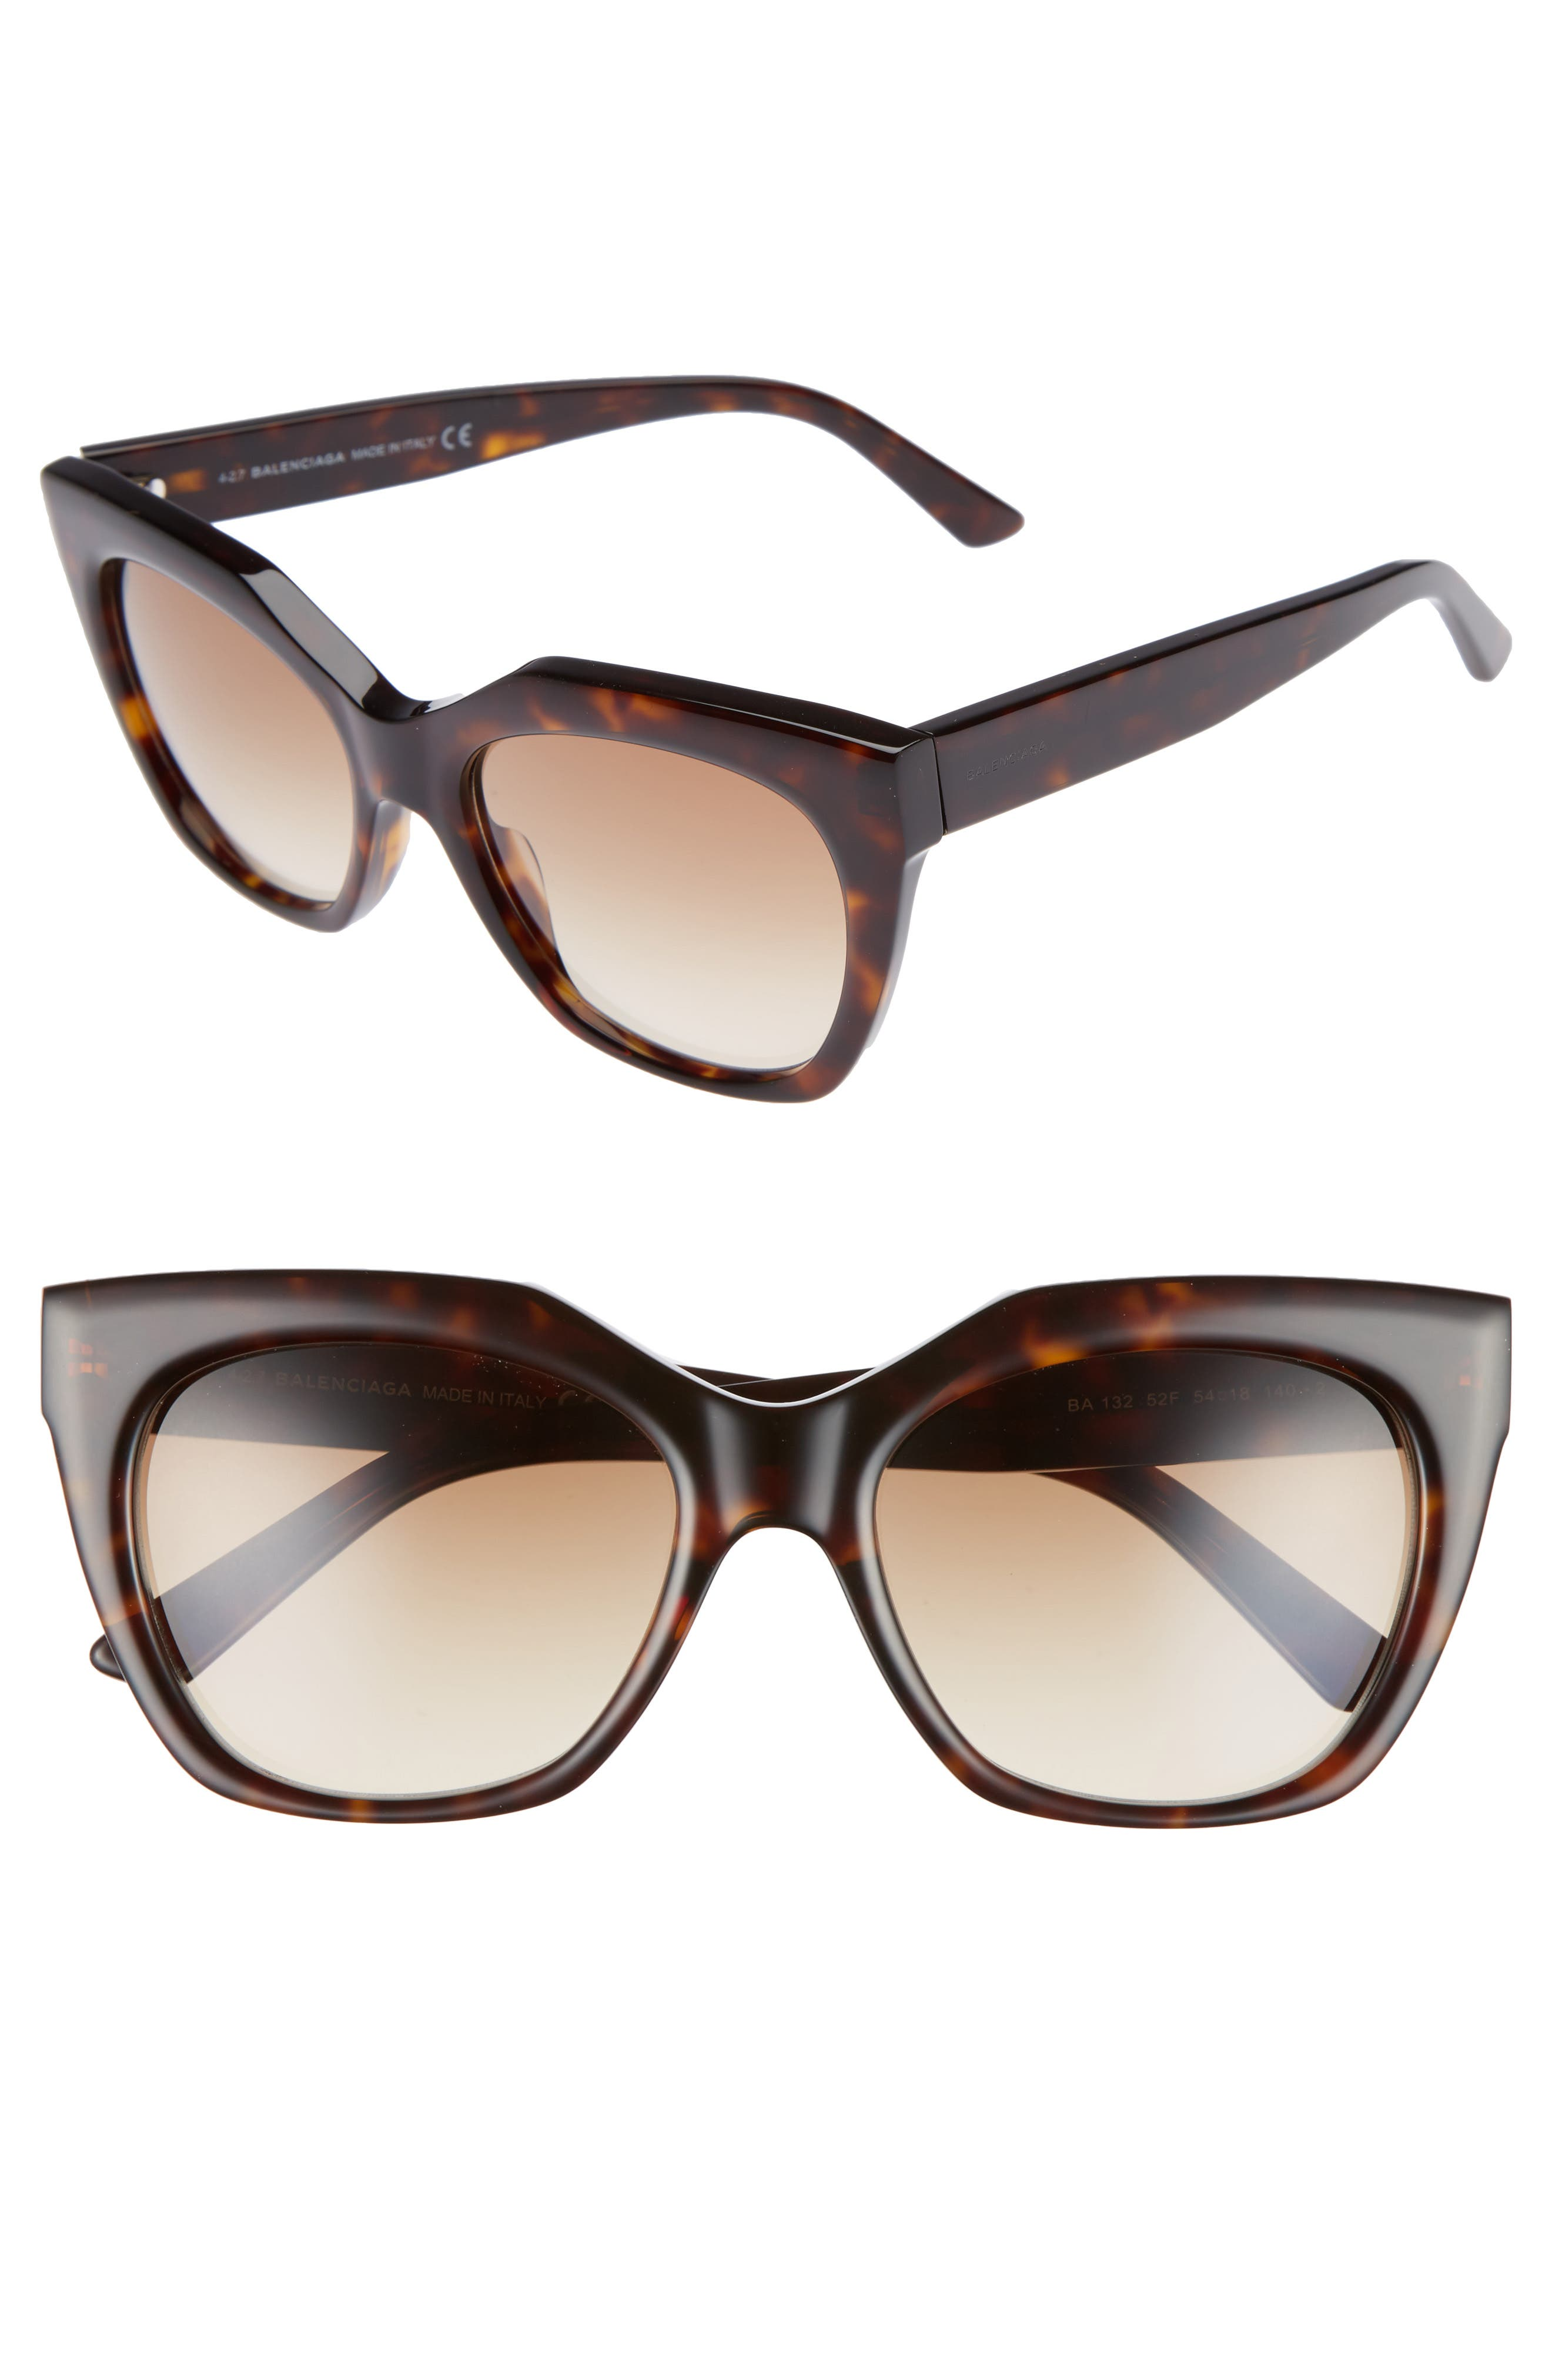 Alternate Image 1 Selected - Balenciaga 54mm Cat Eye Sunglasses